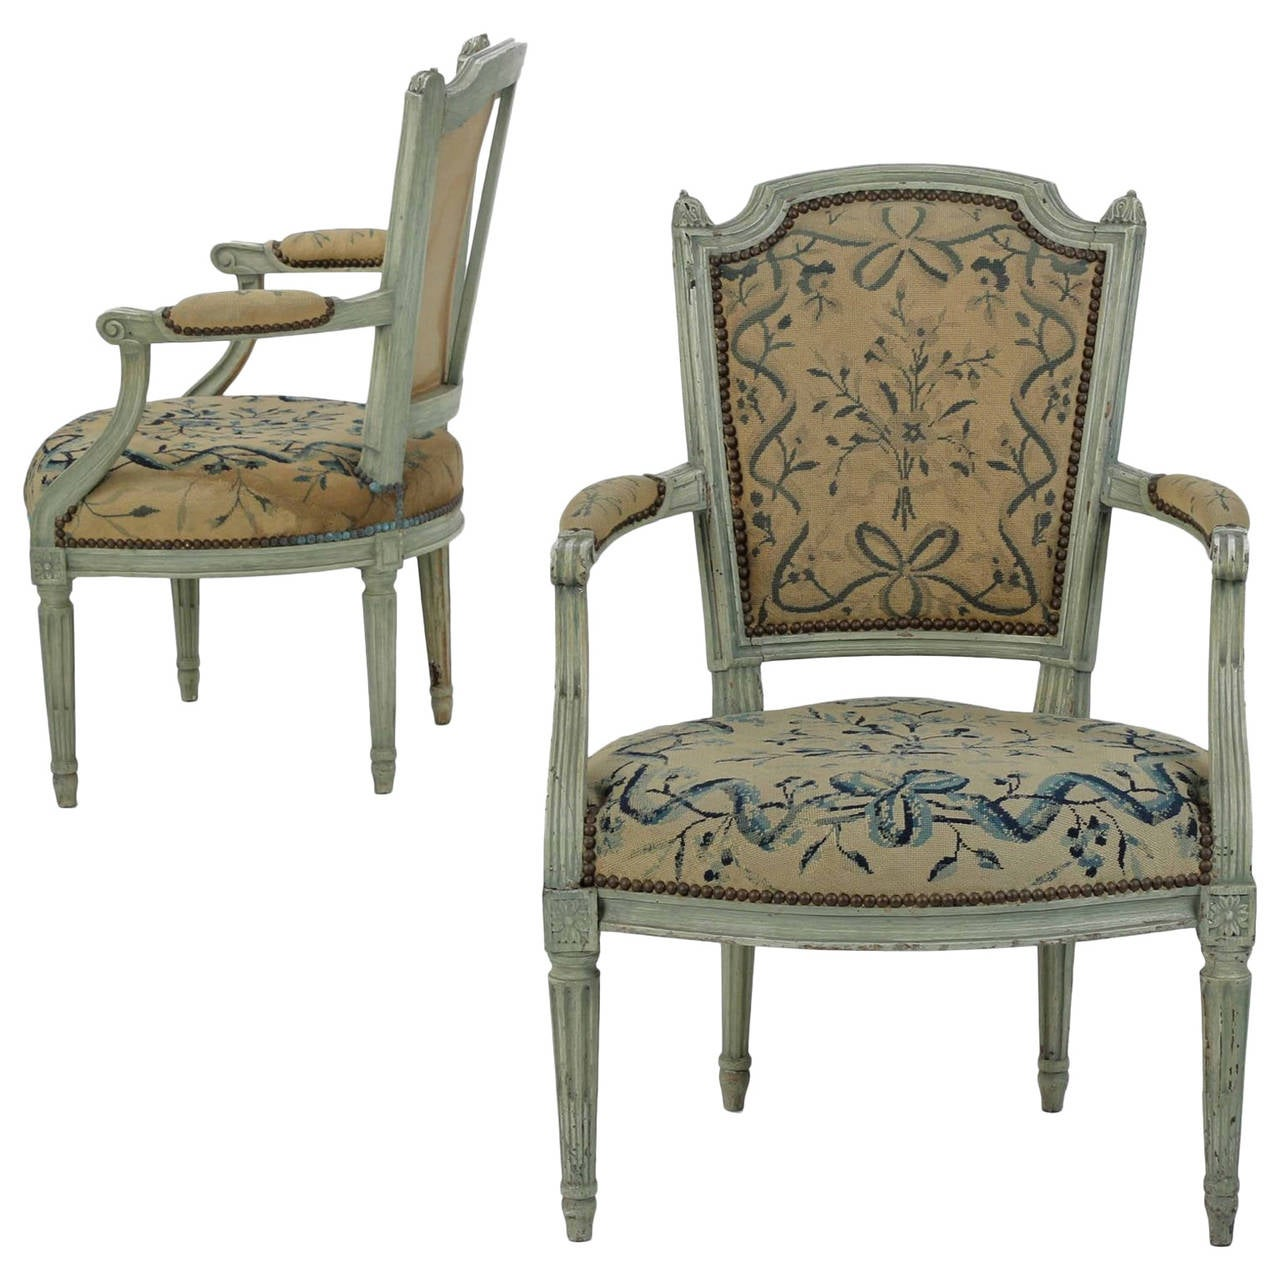 pair of french louis xvi style painted antique fauteuil armchairs 19th century at 1stdibs. Black Bedroom Furniture Sets. Home Design Ideas